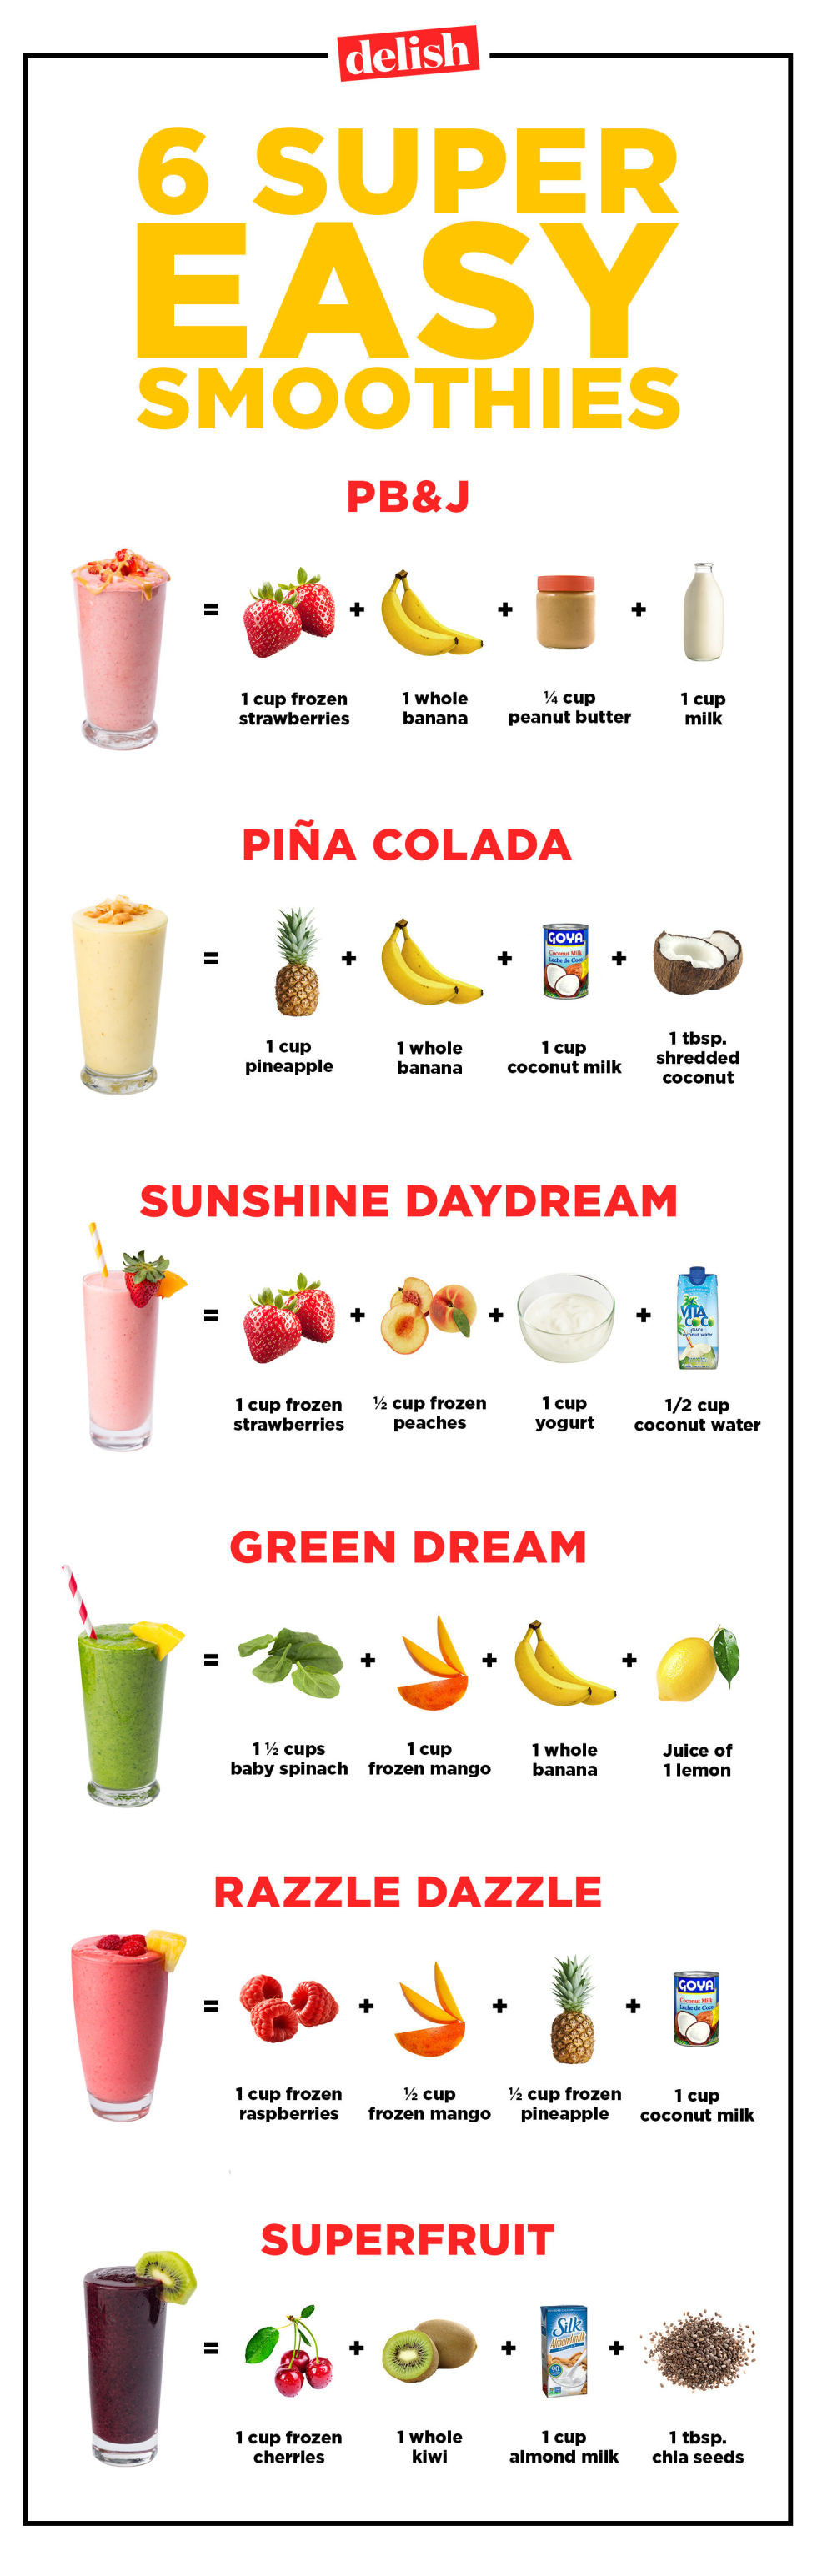 Healthy Fruit Smoothie Recipes the Best Ideas for Healthy Fruit Smoothie Recipes